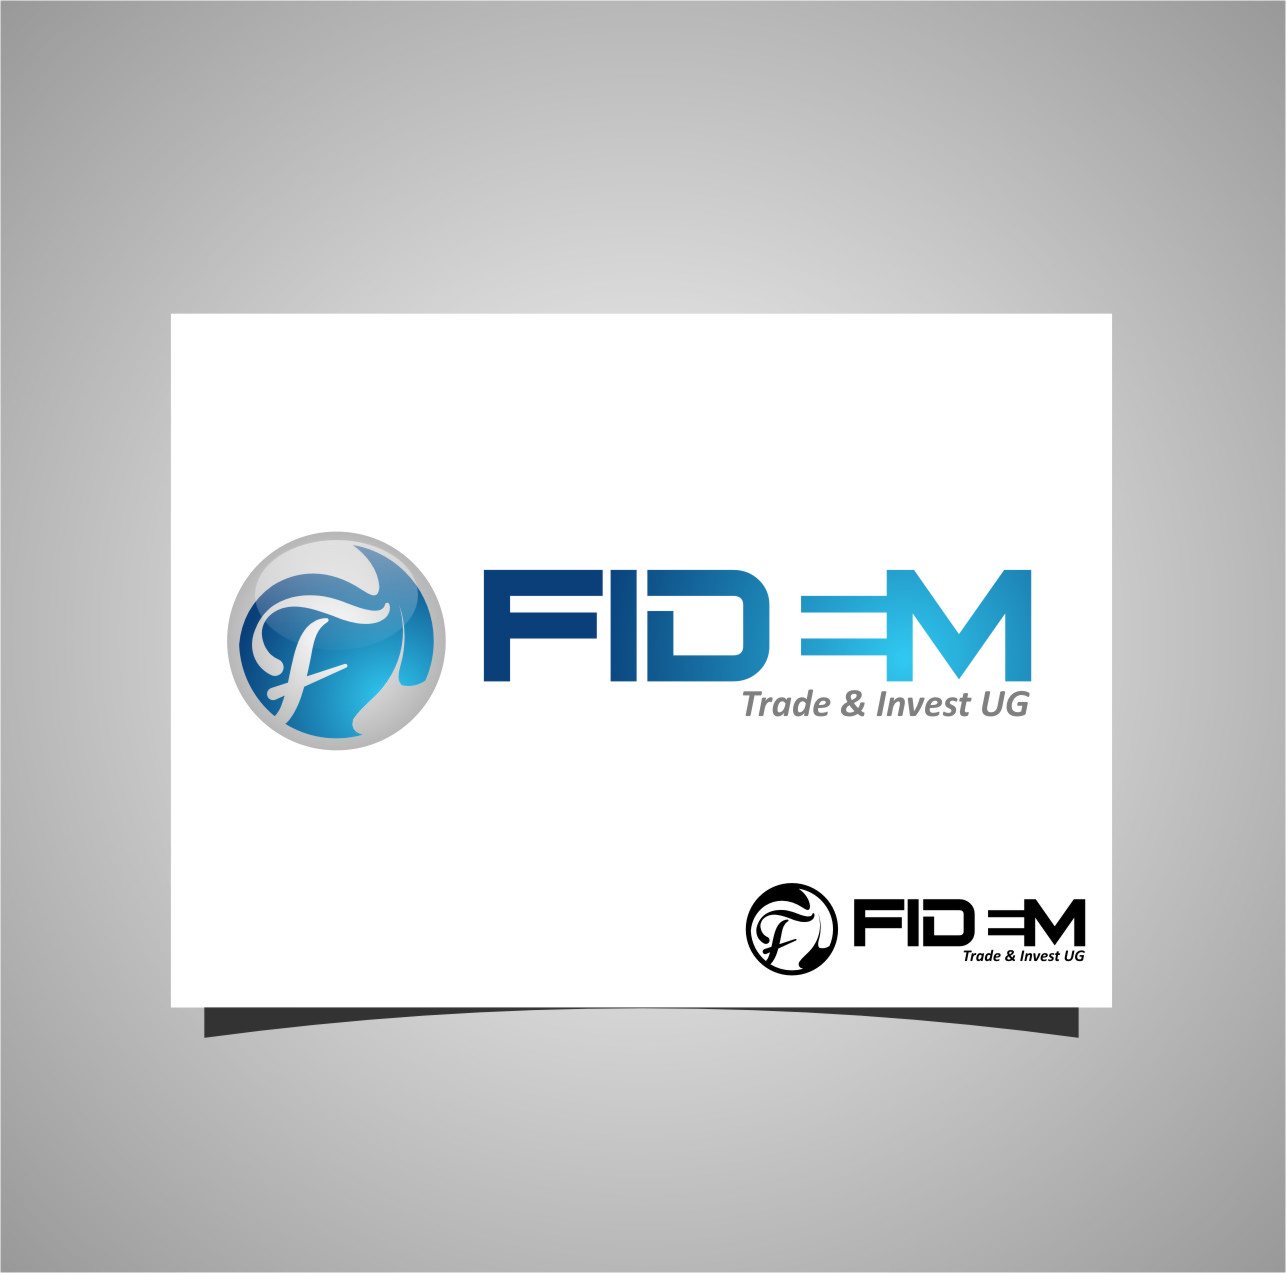 Logo Design by RasYa Muhammad Athaya - Entry No. 499 in the Logo Design Contest Professional Logo Design for FIDEM Trade & Invest UG.